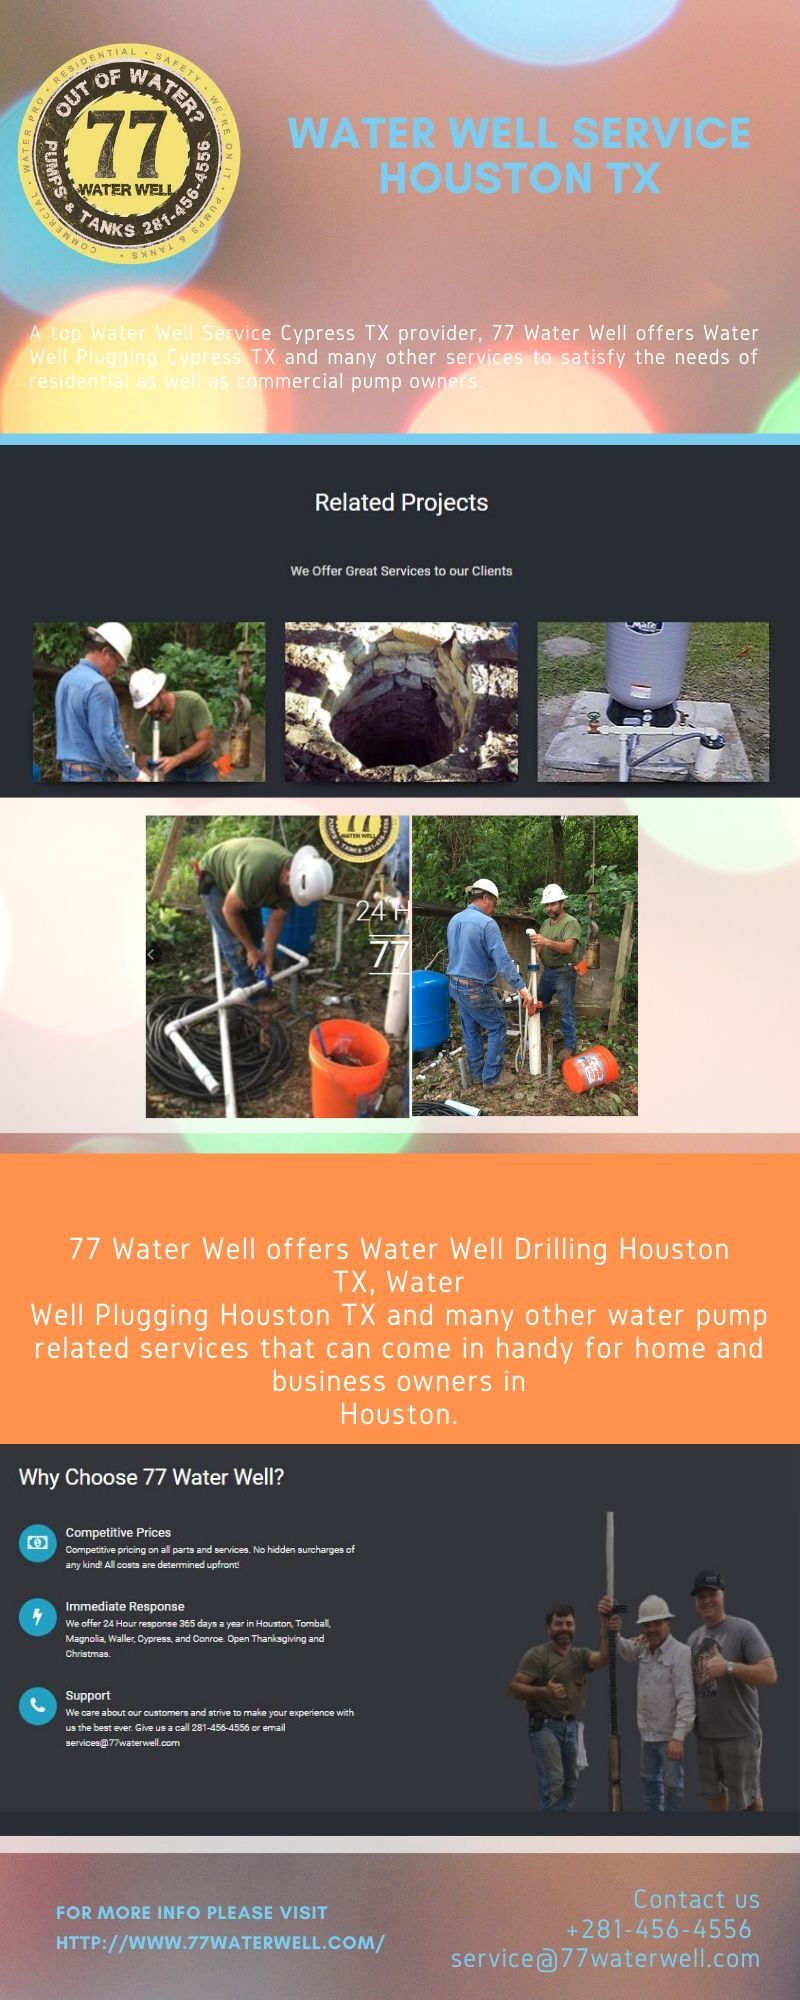 77 Water Well is a top Water